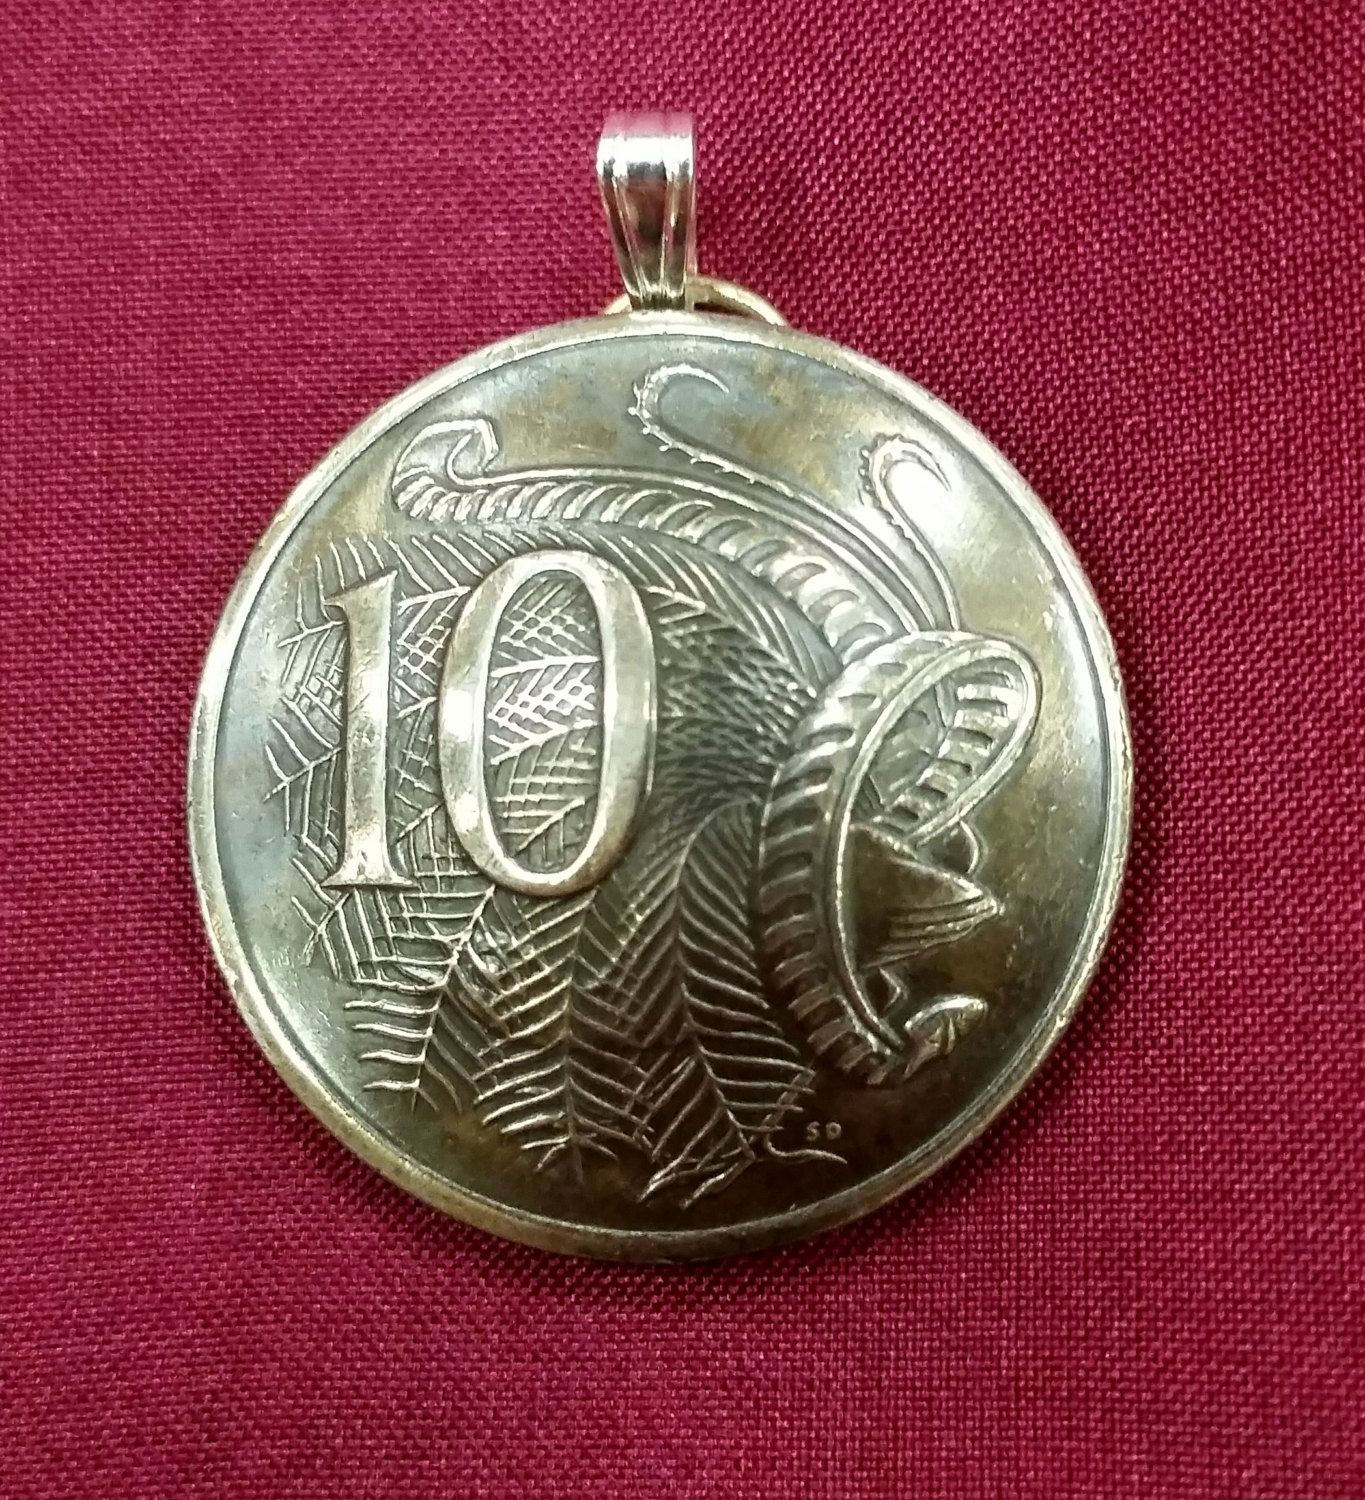 Australia Lyrebird 10 Cents Coin Domed Pendant pinned by